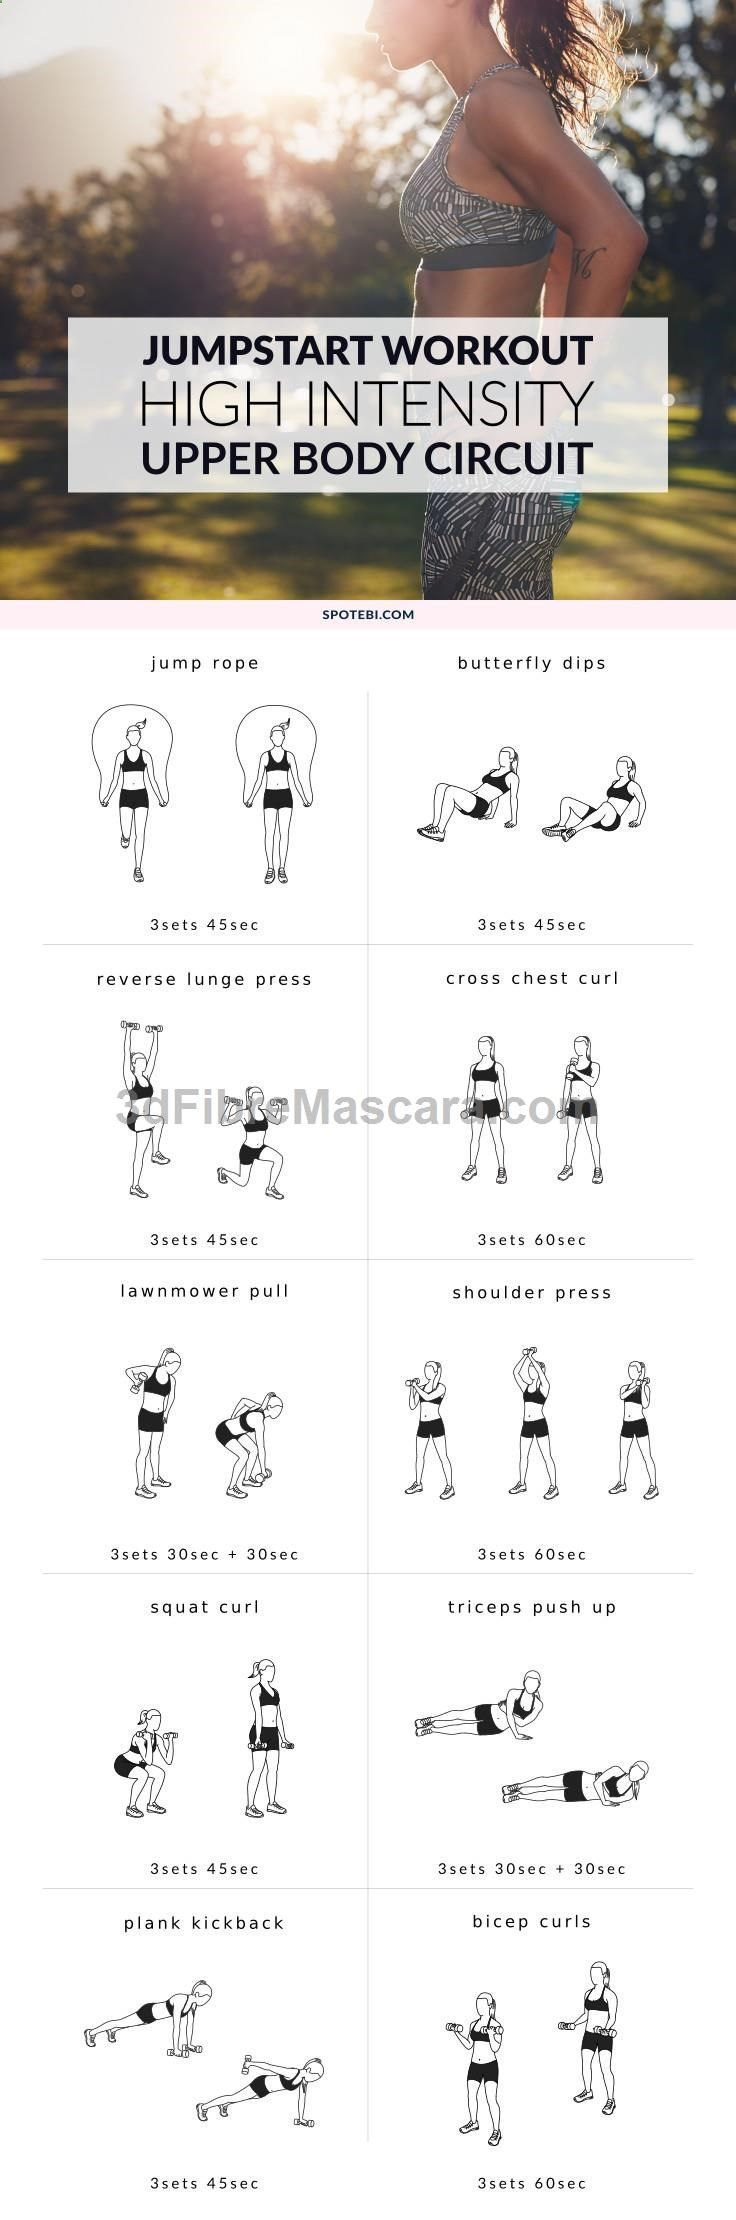 Jumpstart your weight loss and sculpt sleek, sexy arms and shoulders with this high-intensity upper body workout. A mix of cardio and strength training moves designed to burn off fat fast! #diet #dieting #lowcalories #dietplan #excercise #diabetic #diabet fast diet lifestyle